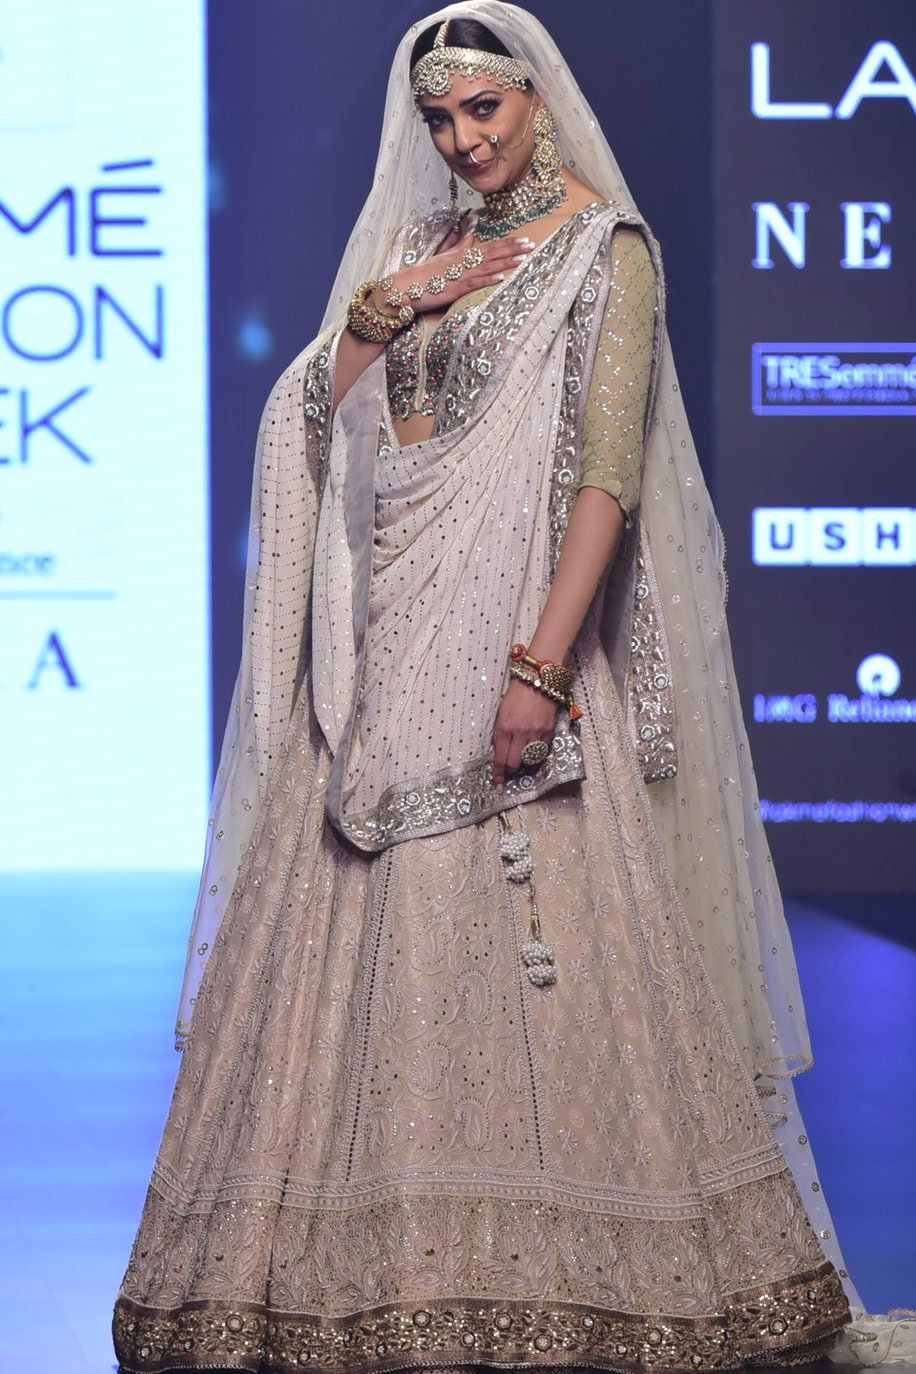 Beige & Ivory Kaamdani & Chikankari work Bridal Lehenga set by House of Kotwara